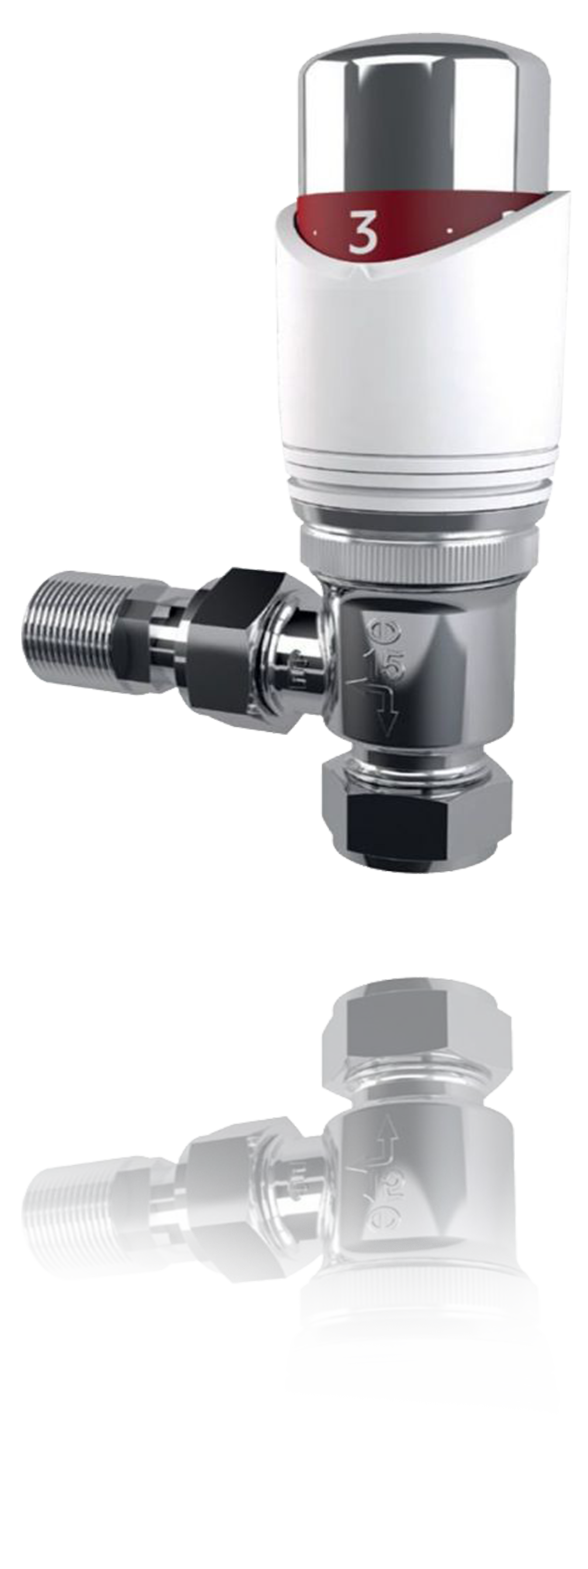 Highest Compatibility with Thermostatic Valves technology in Anit products